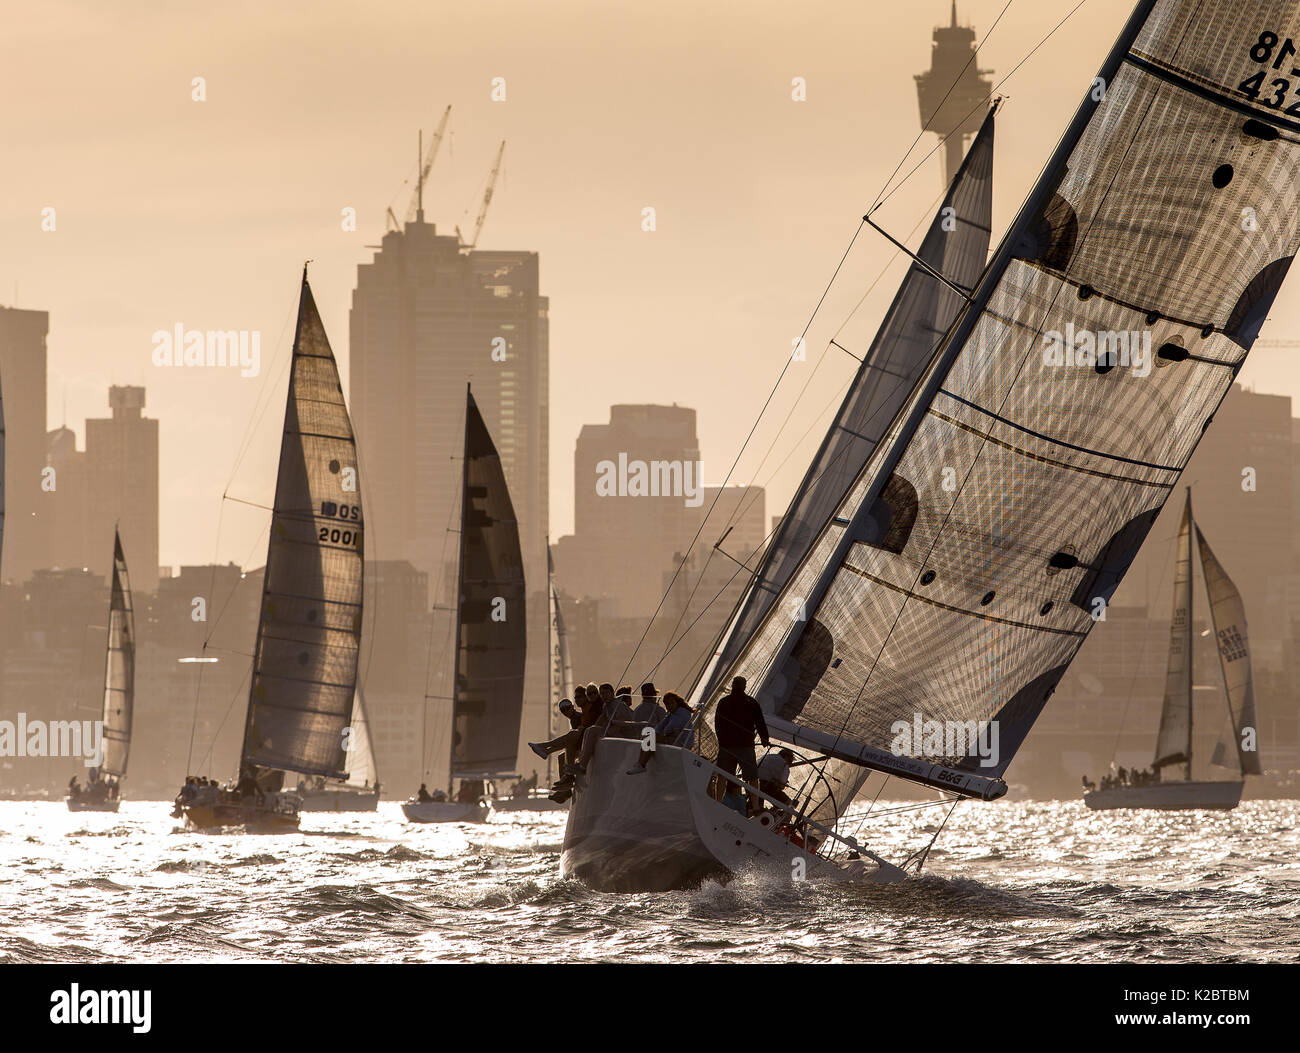 Yachts race at dusk in Sydney Harbour, New South Wales, Australia, November 2012. All non-editorial uses must be cleared individually. - Stock Image